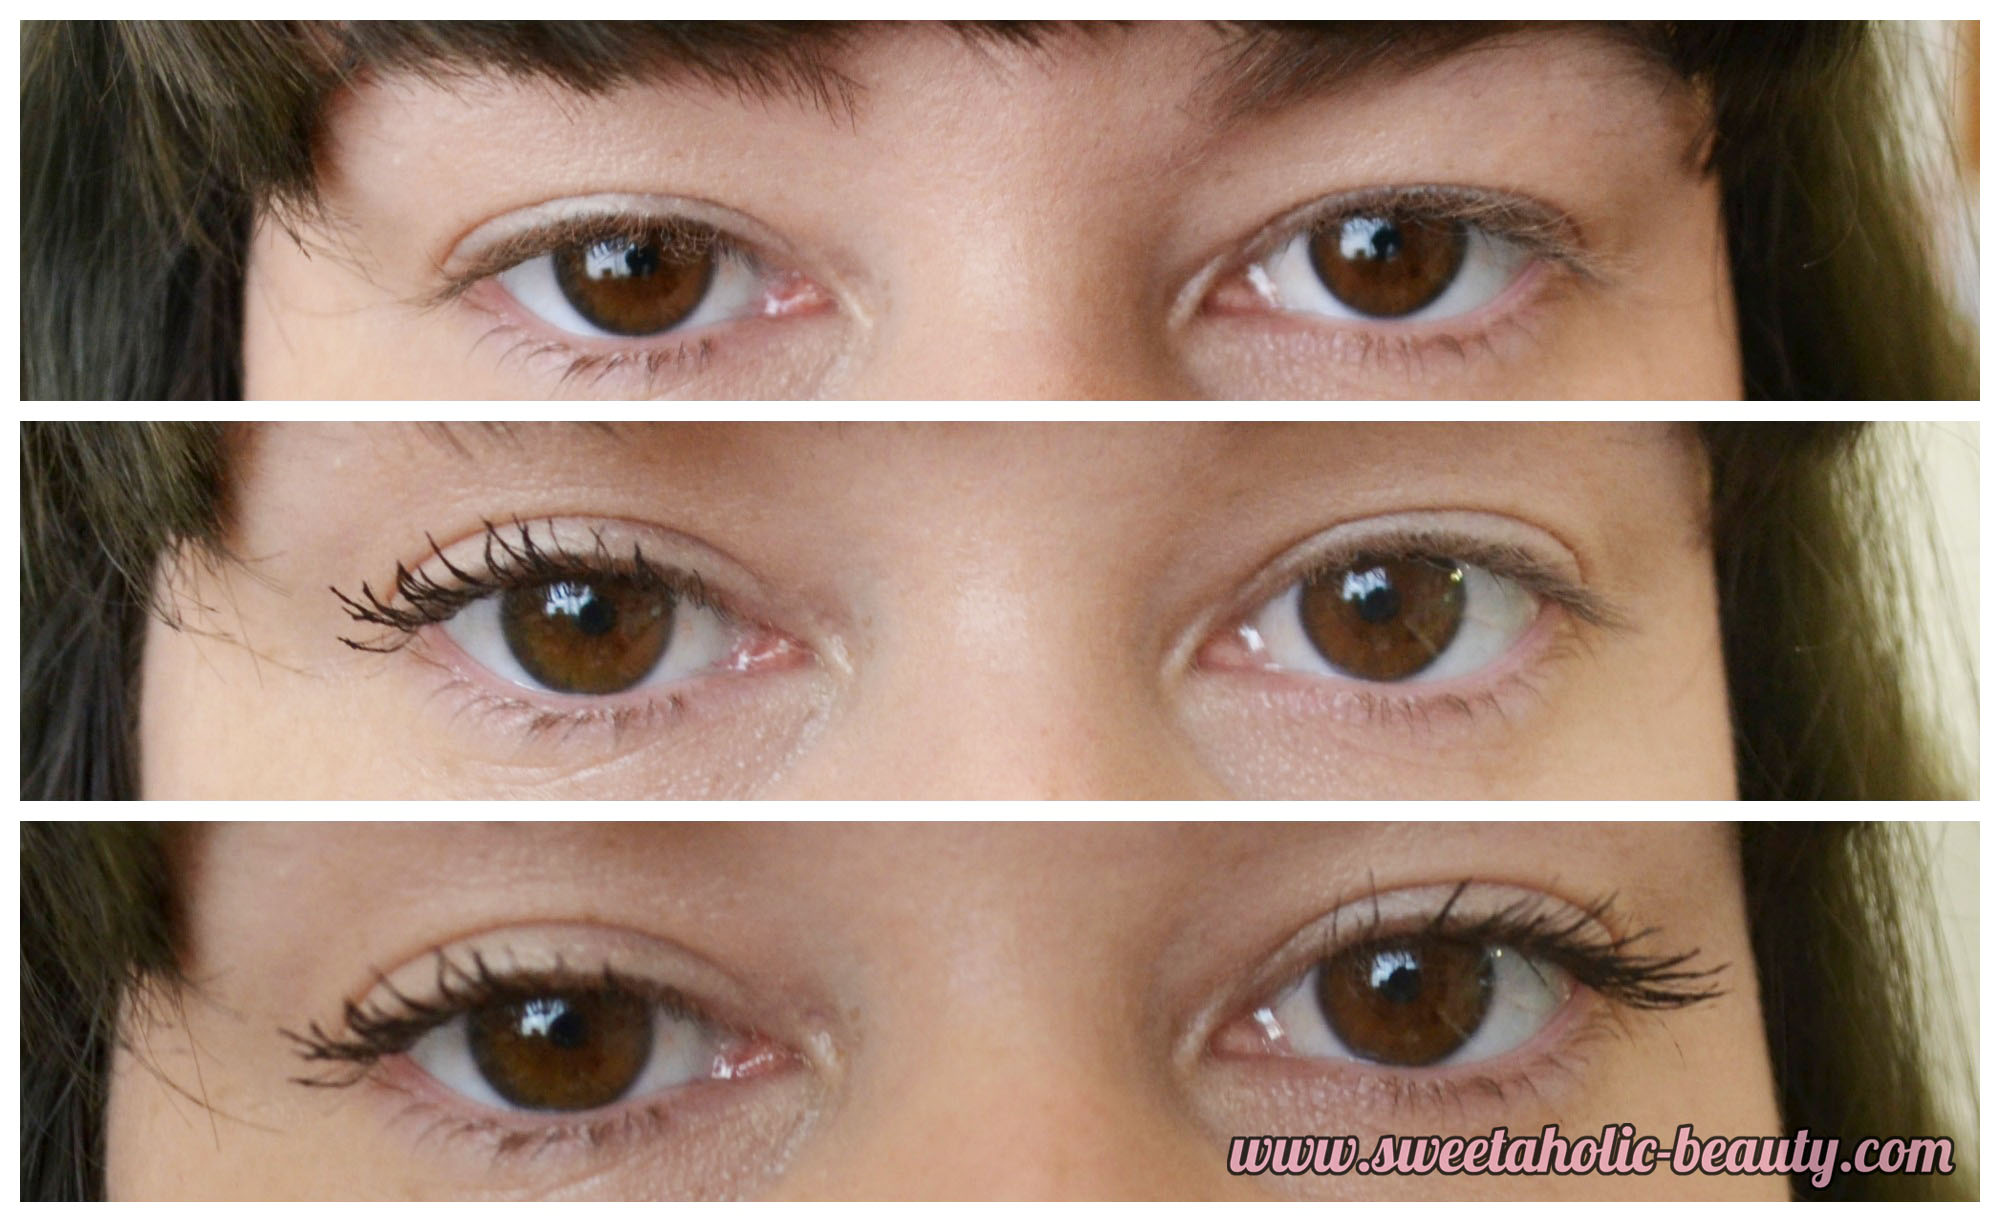 L'Oreal Miss Manga Mascara Review - Sweetaholic Beauty